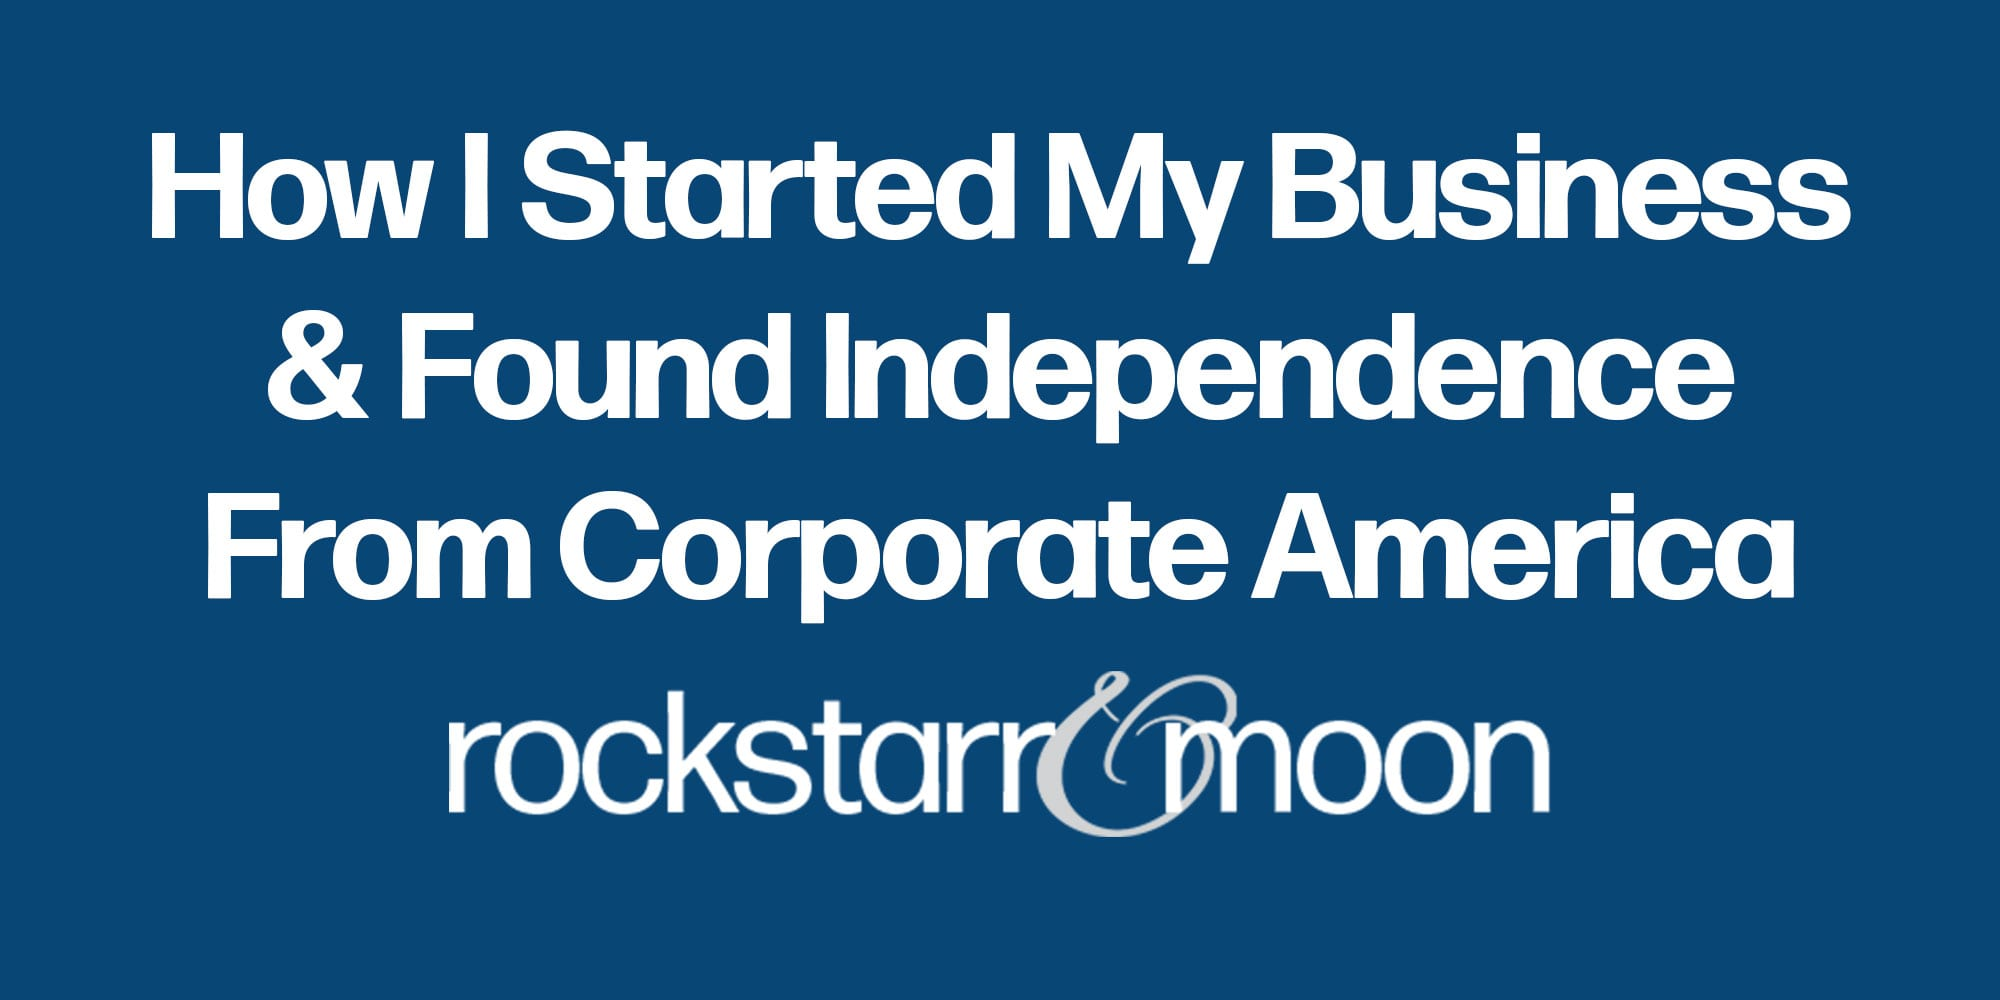 How I Started My Business and Found Independence From Corporate America